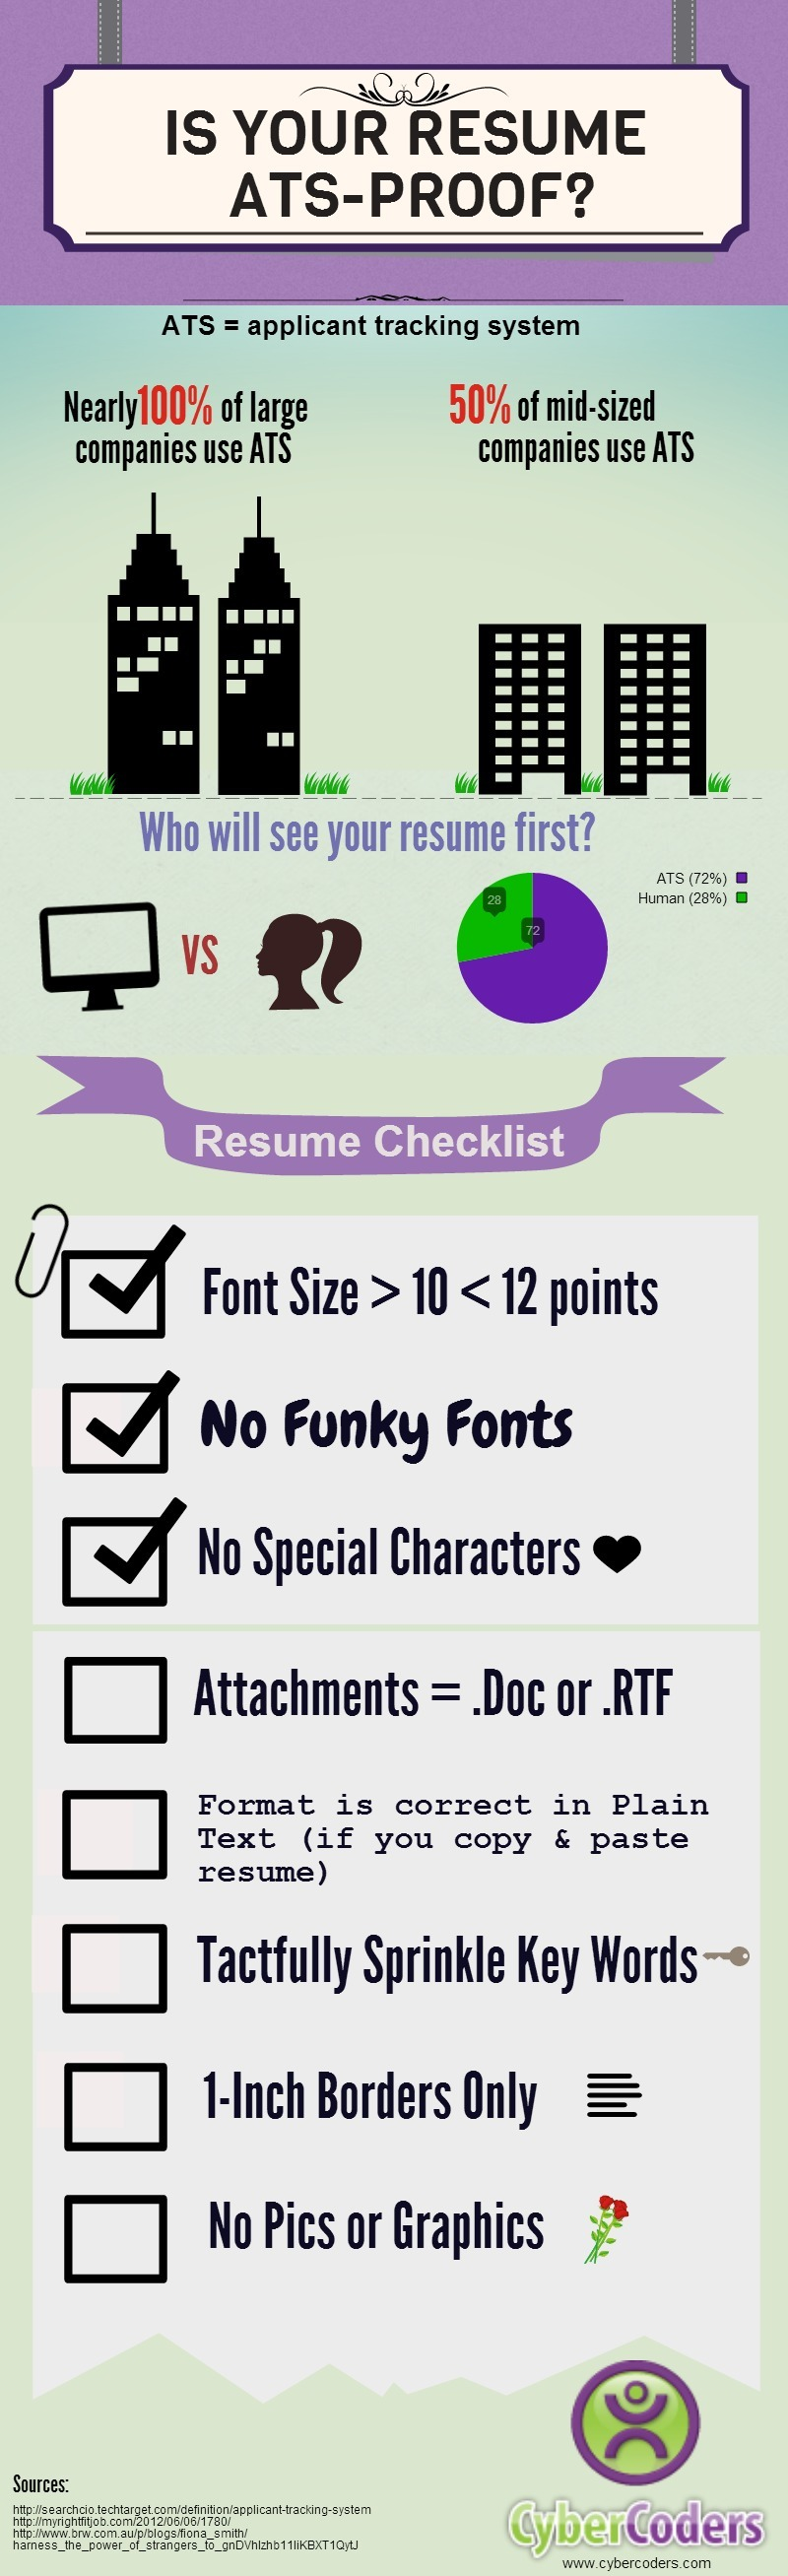 cybercoders infographic is your resume ats proof With ats proof resume